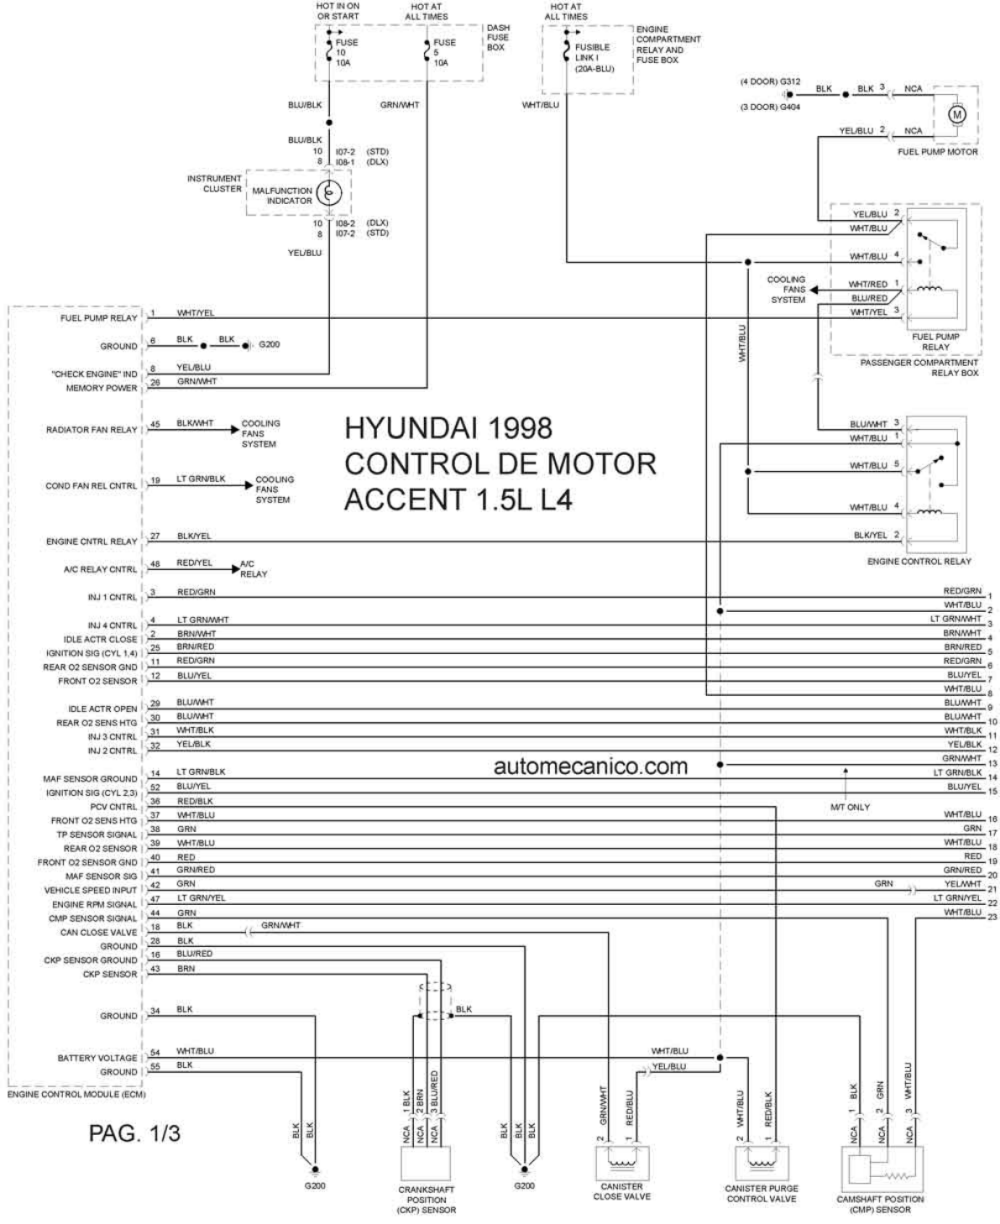 medium resolution of hyundai accent 1998 misc document wiring diagram pdf 2003 hyundai sonata wiring diagrams hyundai accent wiring diagram pdf